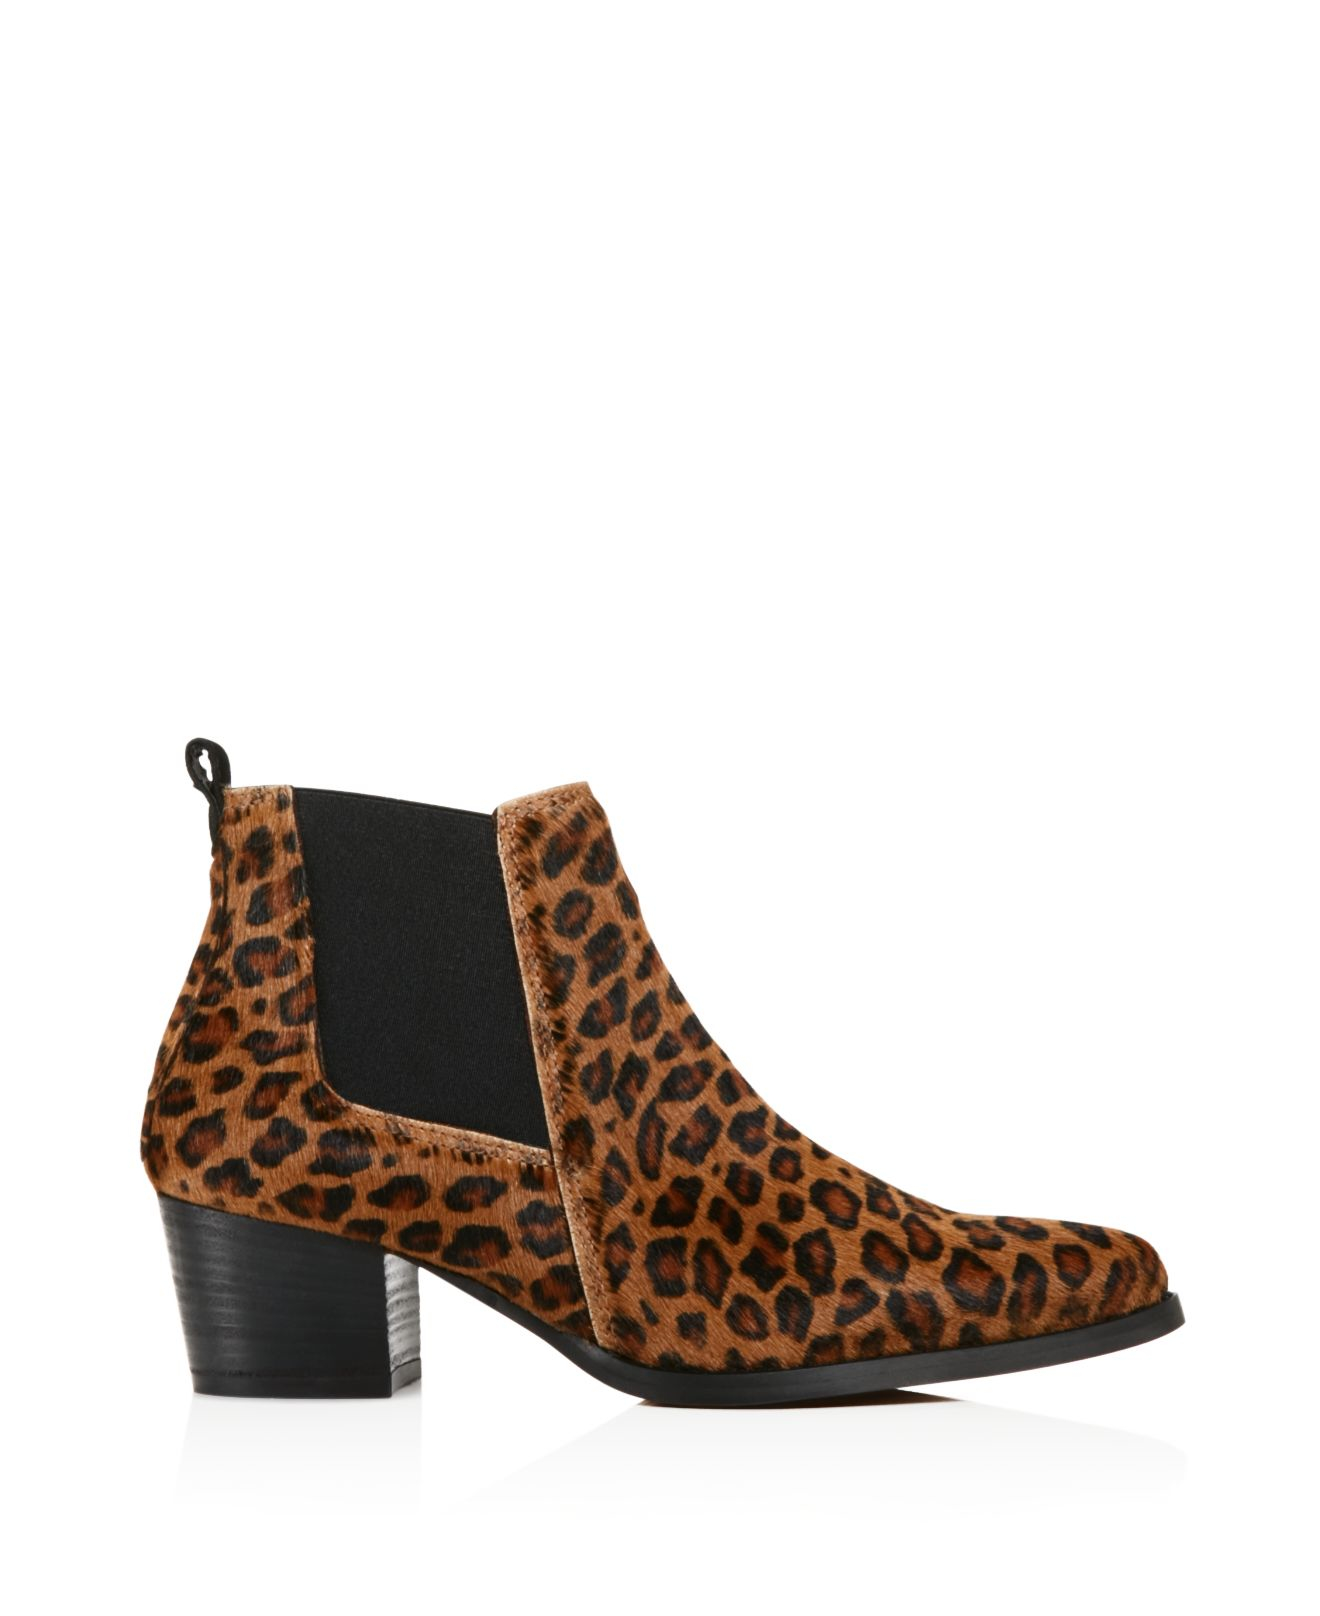 Kenneth Cole Leather Russie Leopard Print Calf Hair Chelsea Booties - 100% Bloomingdale's Exclusive in Brown